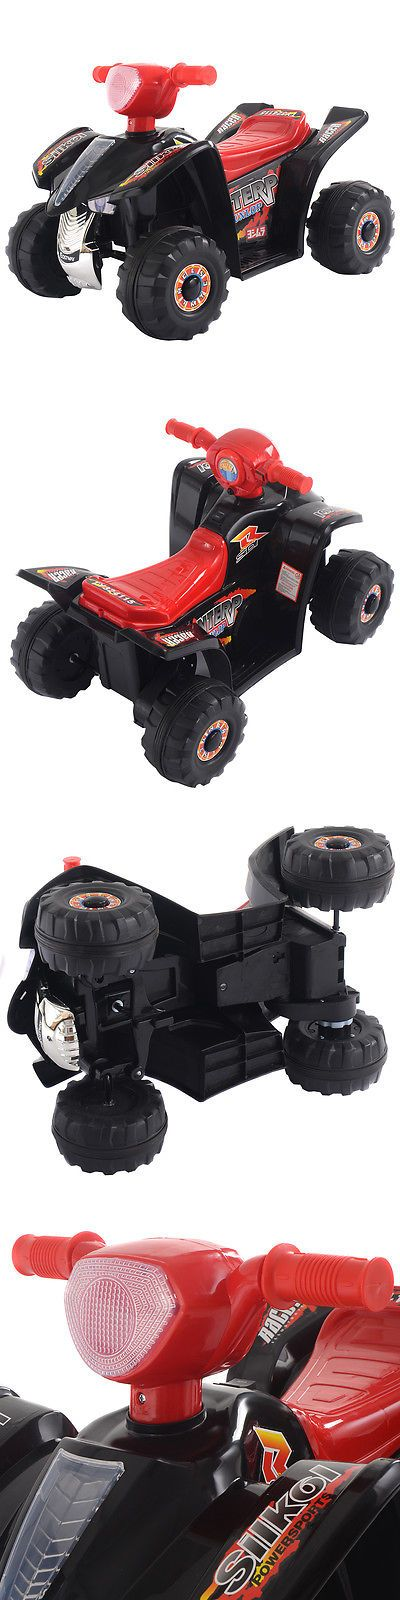 Ride On Toys and Accessories 145944: 6V Kids Ride On Atv Quad 4 Wheeler Electric Toy Car Battery Power Led Lights -> BUY IT NOW ONLY: $45.99 on eBay!